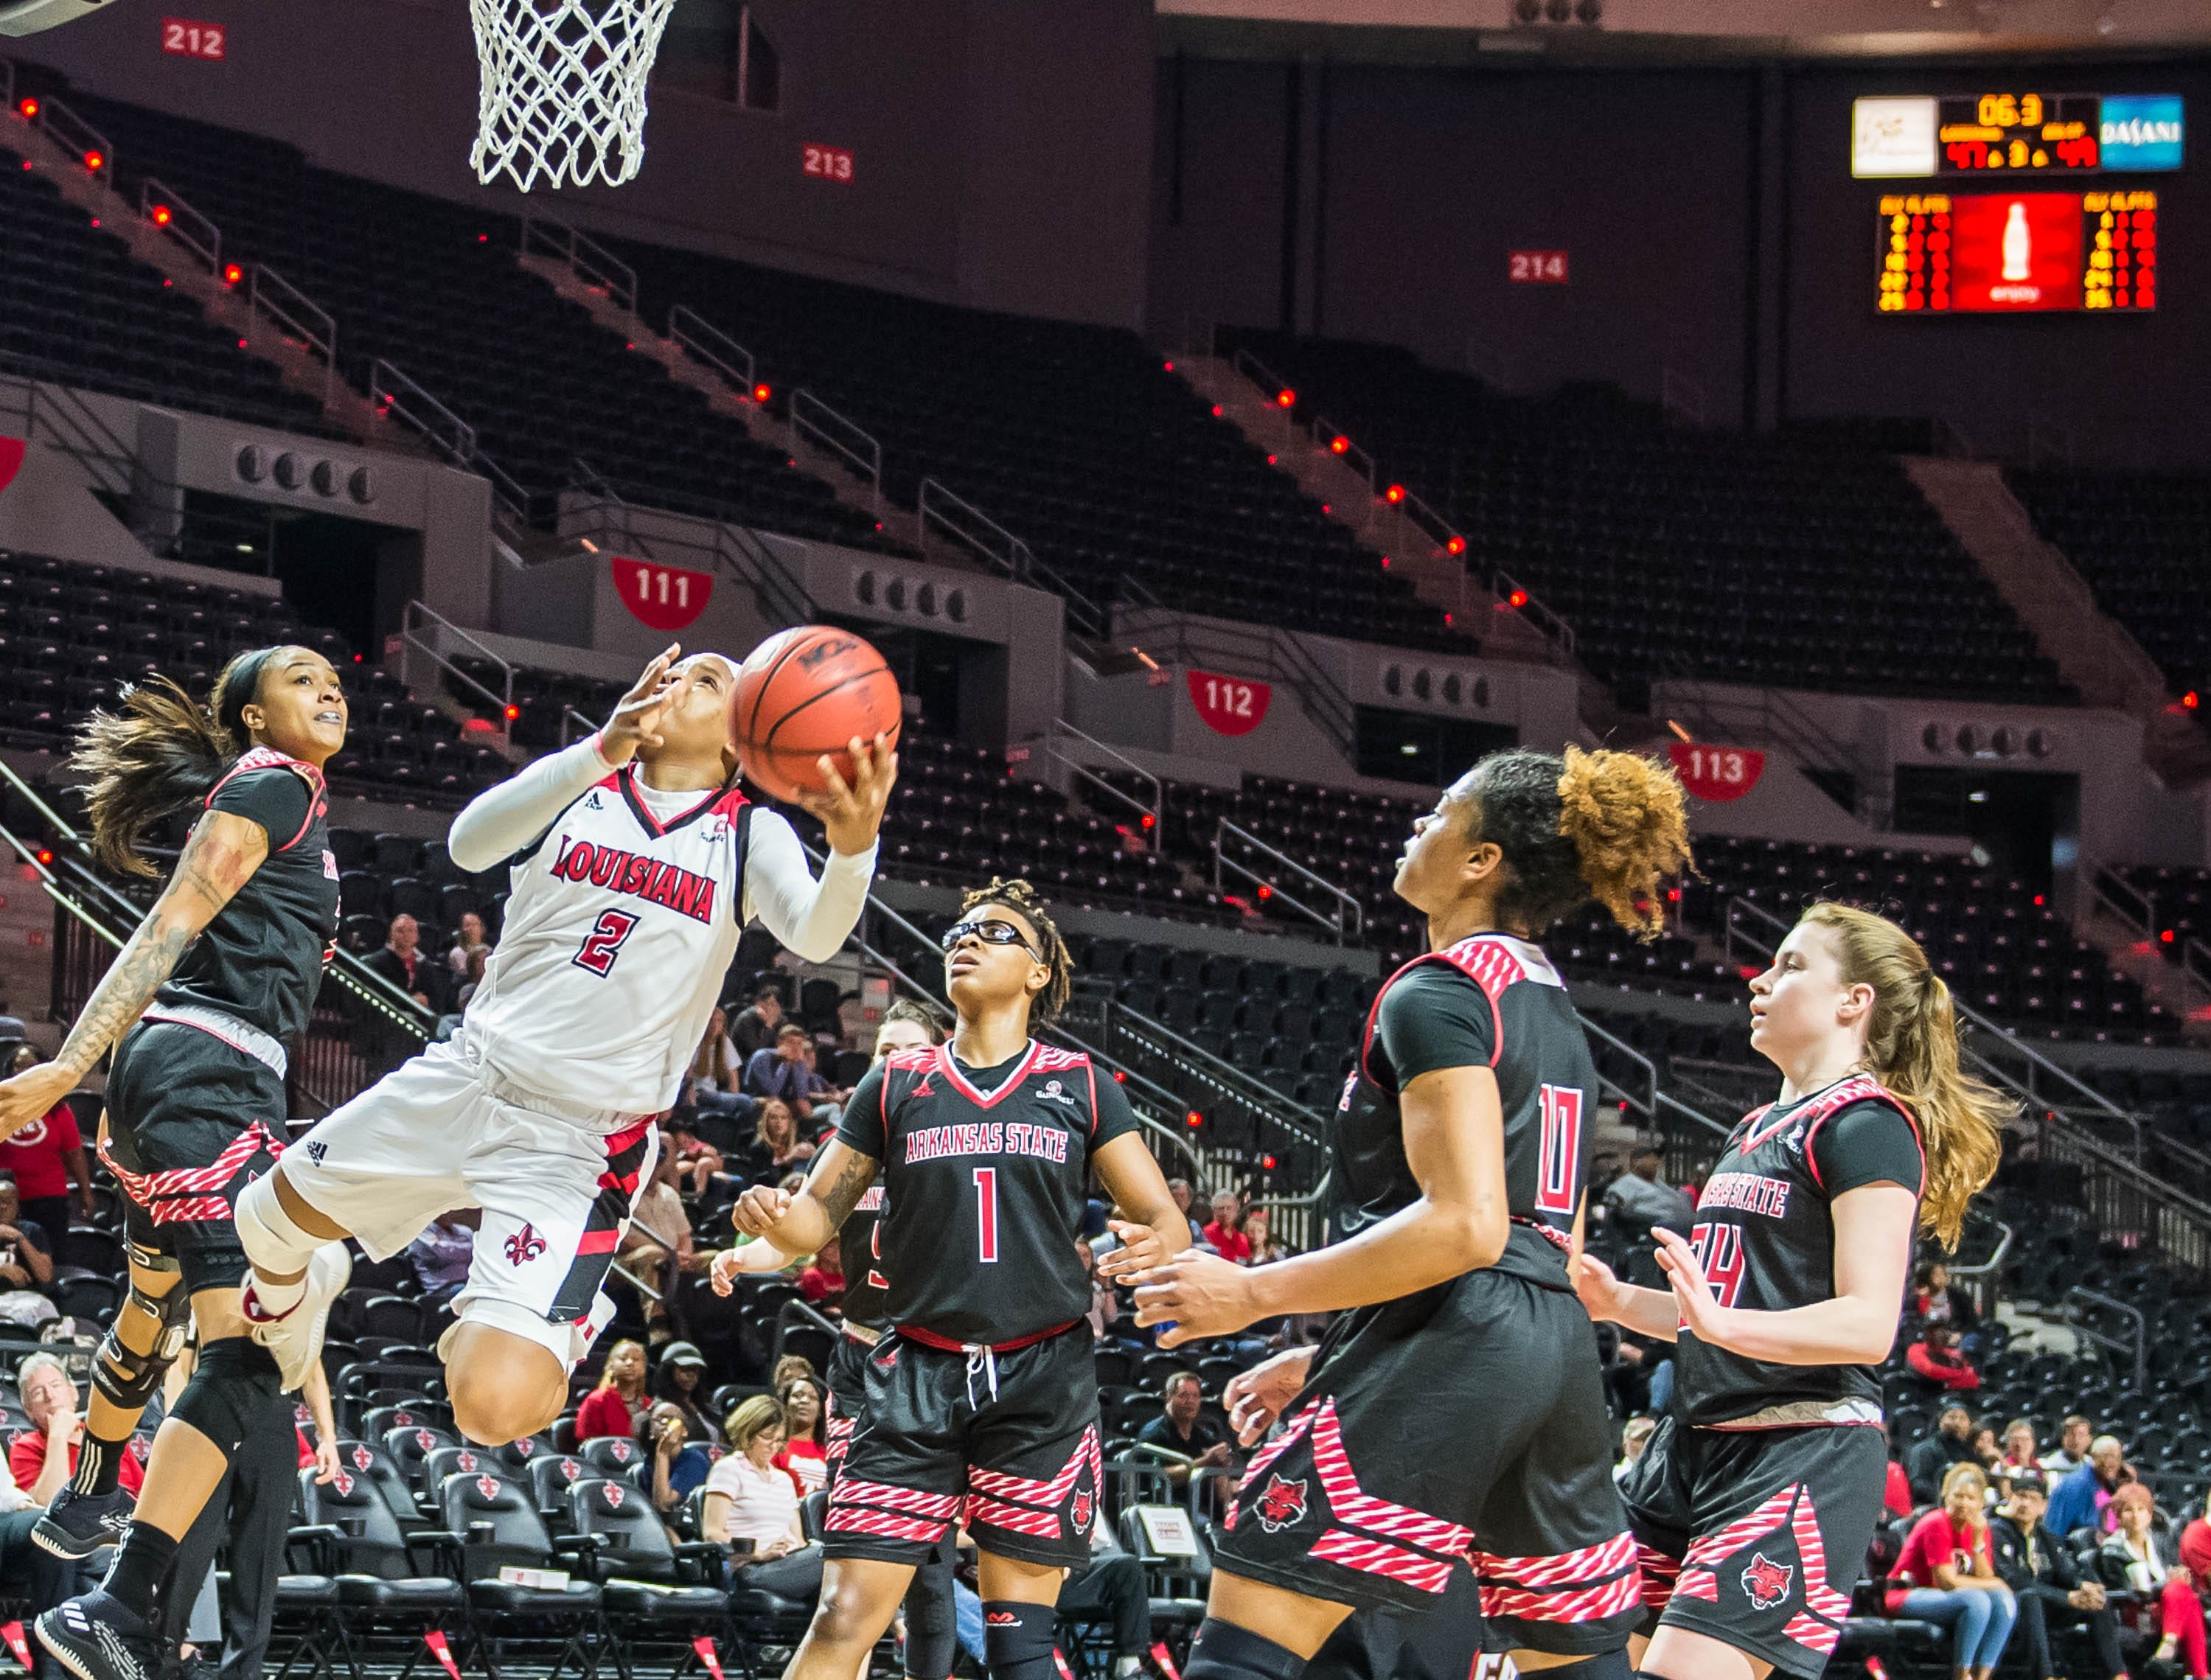 Cajuns Brandi Williams (2) with the layup and draws the foul for the 3-point play as the Cajuns women's basketball team plays the Arkansas State Red Wolves at the Cajundome on Saturday, March 9, 2019.